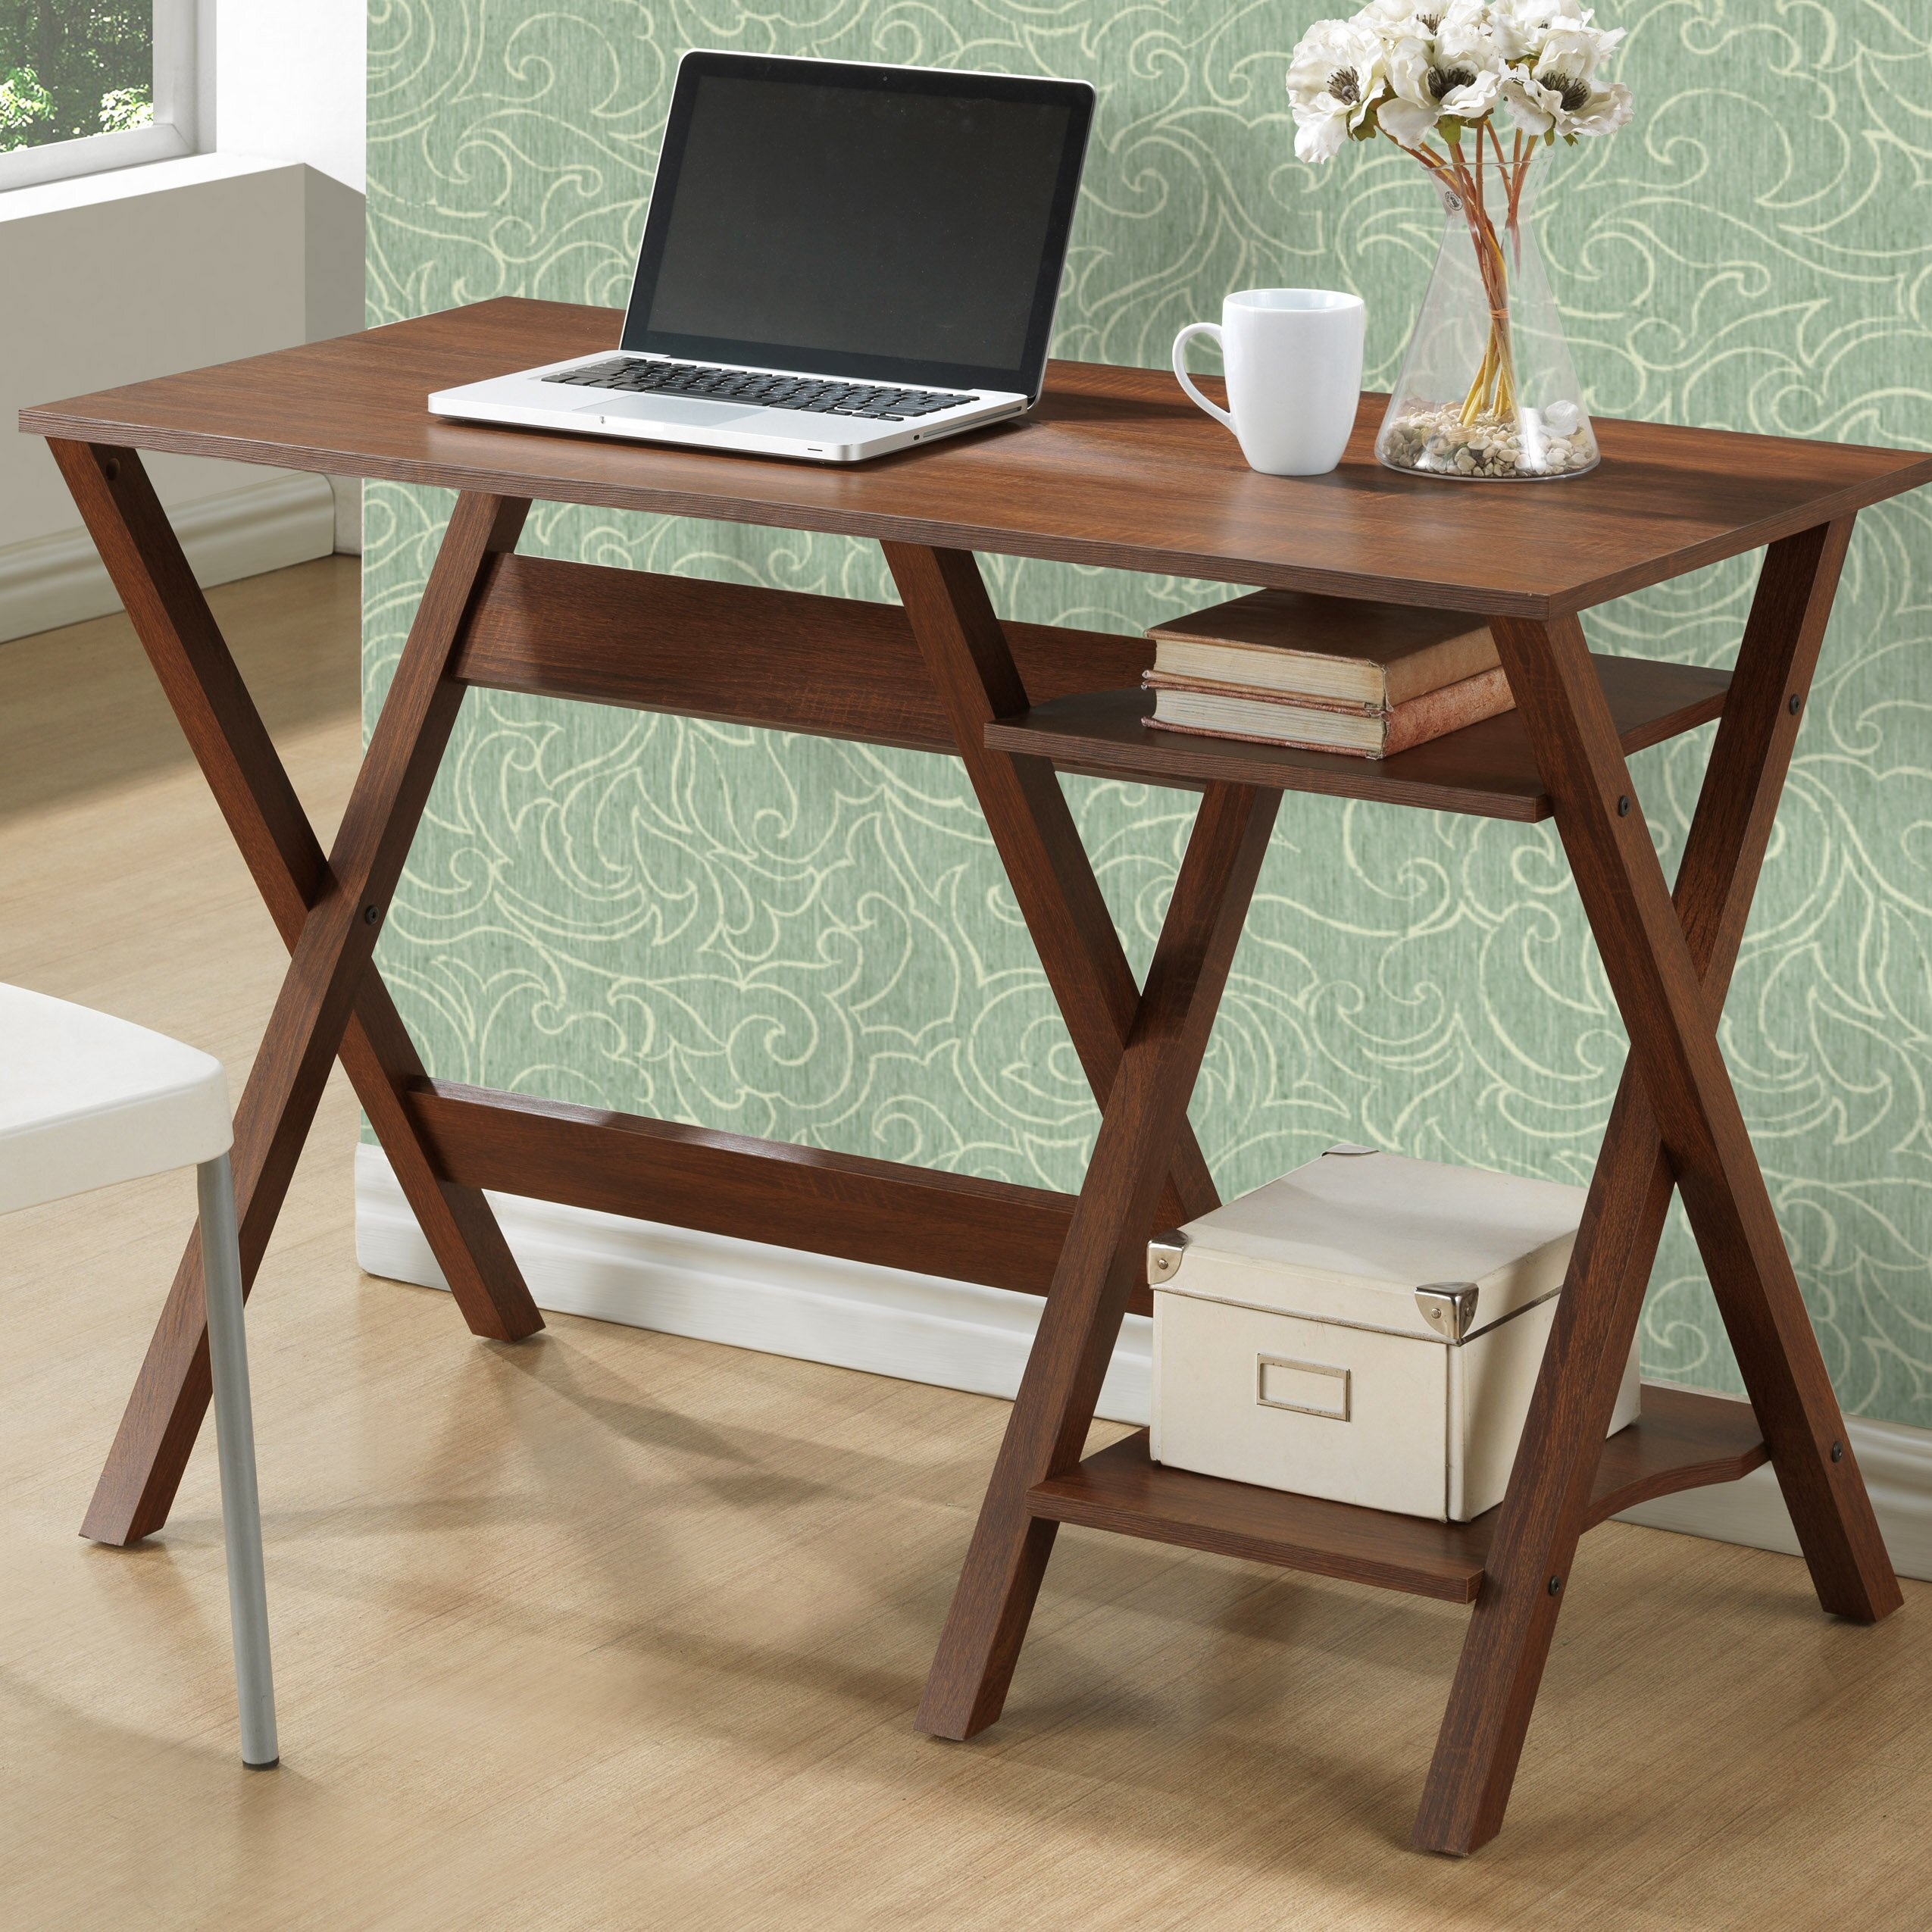 Writing Desk With Bookshelves kashioricom Wooden Sofa Chair